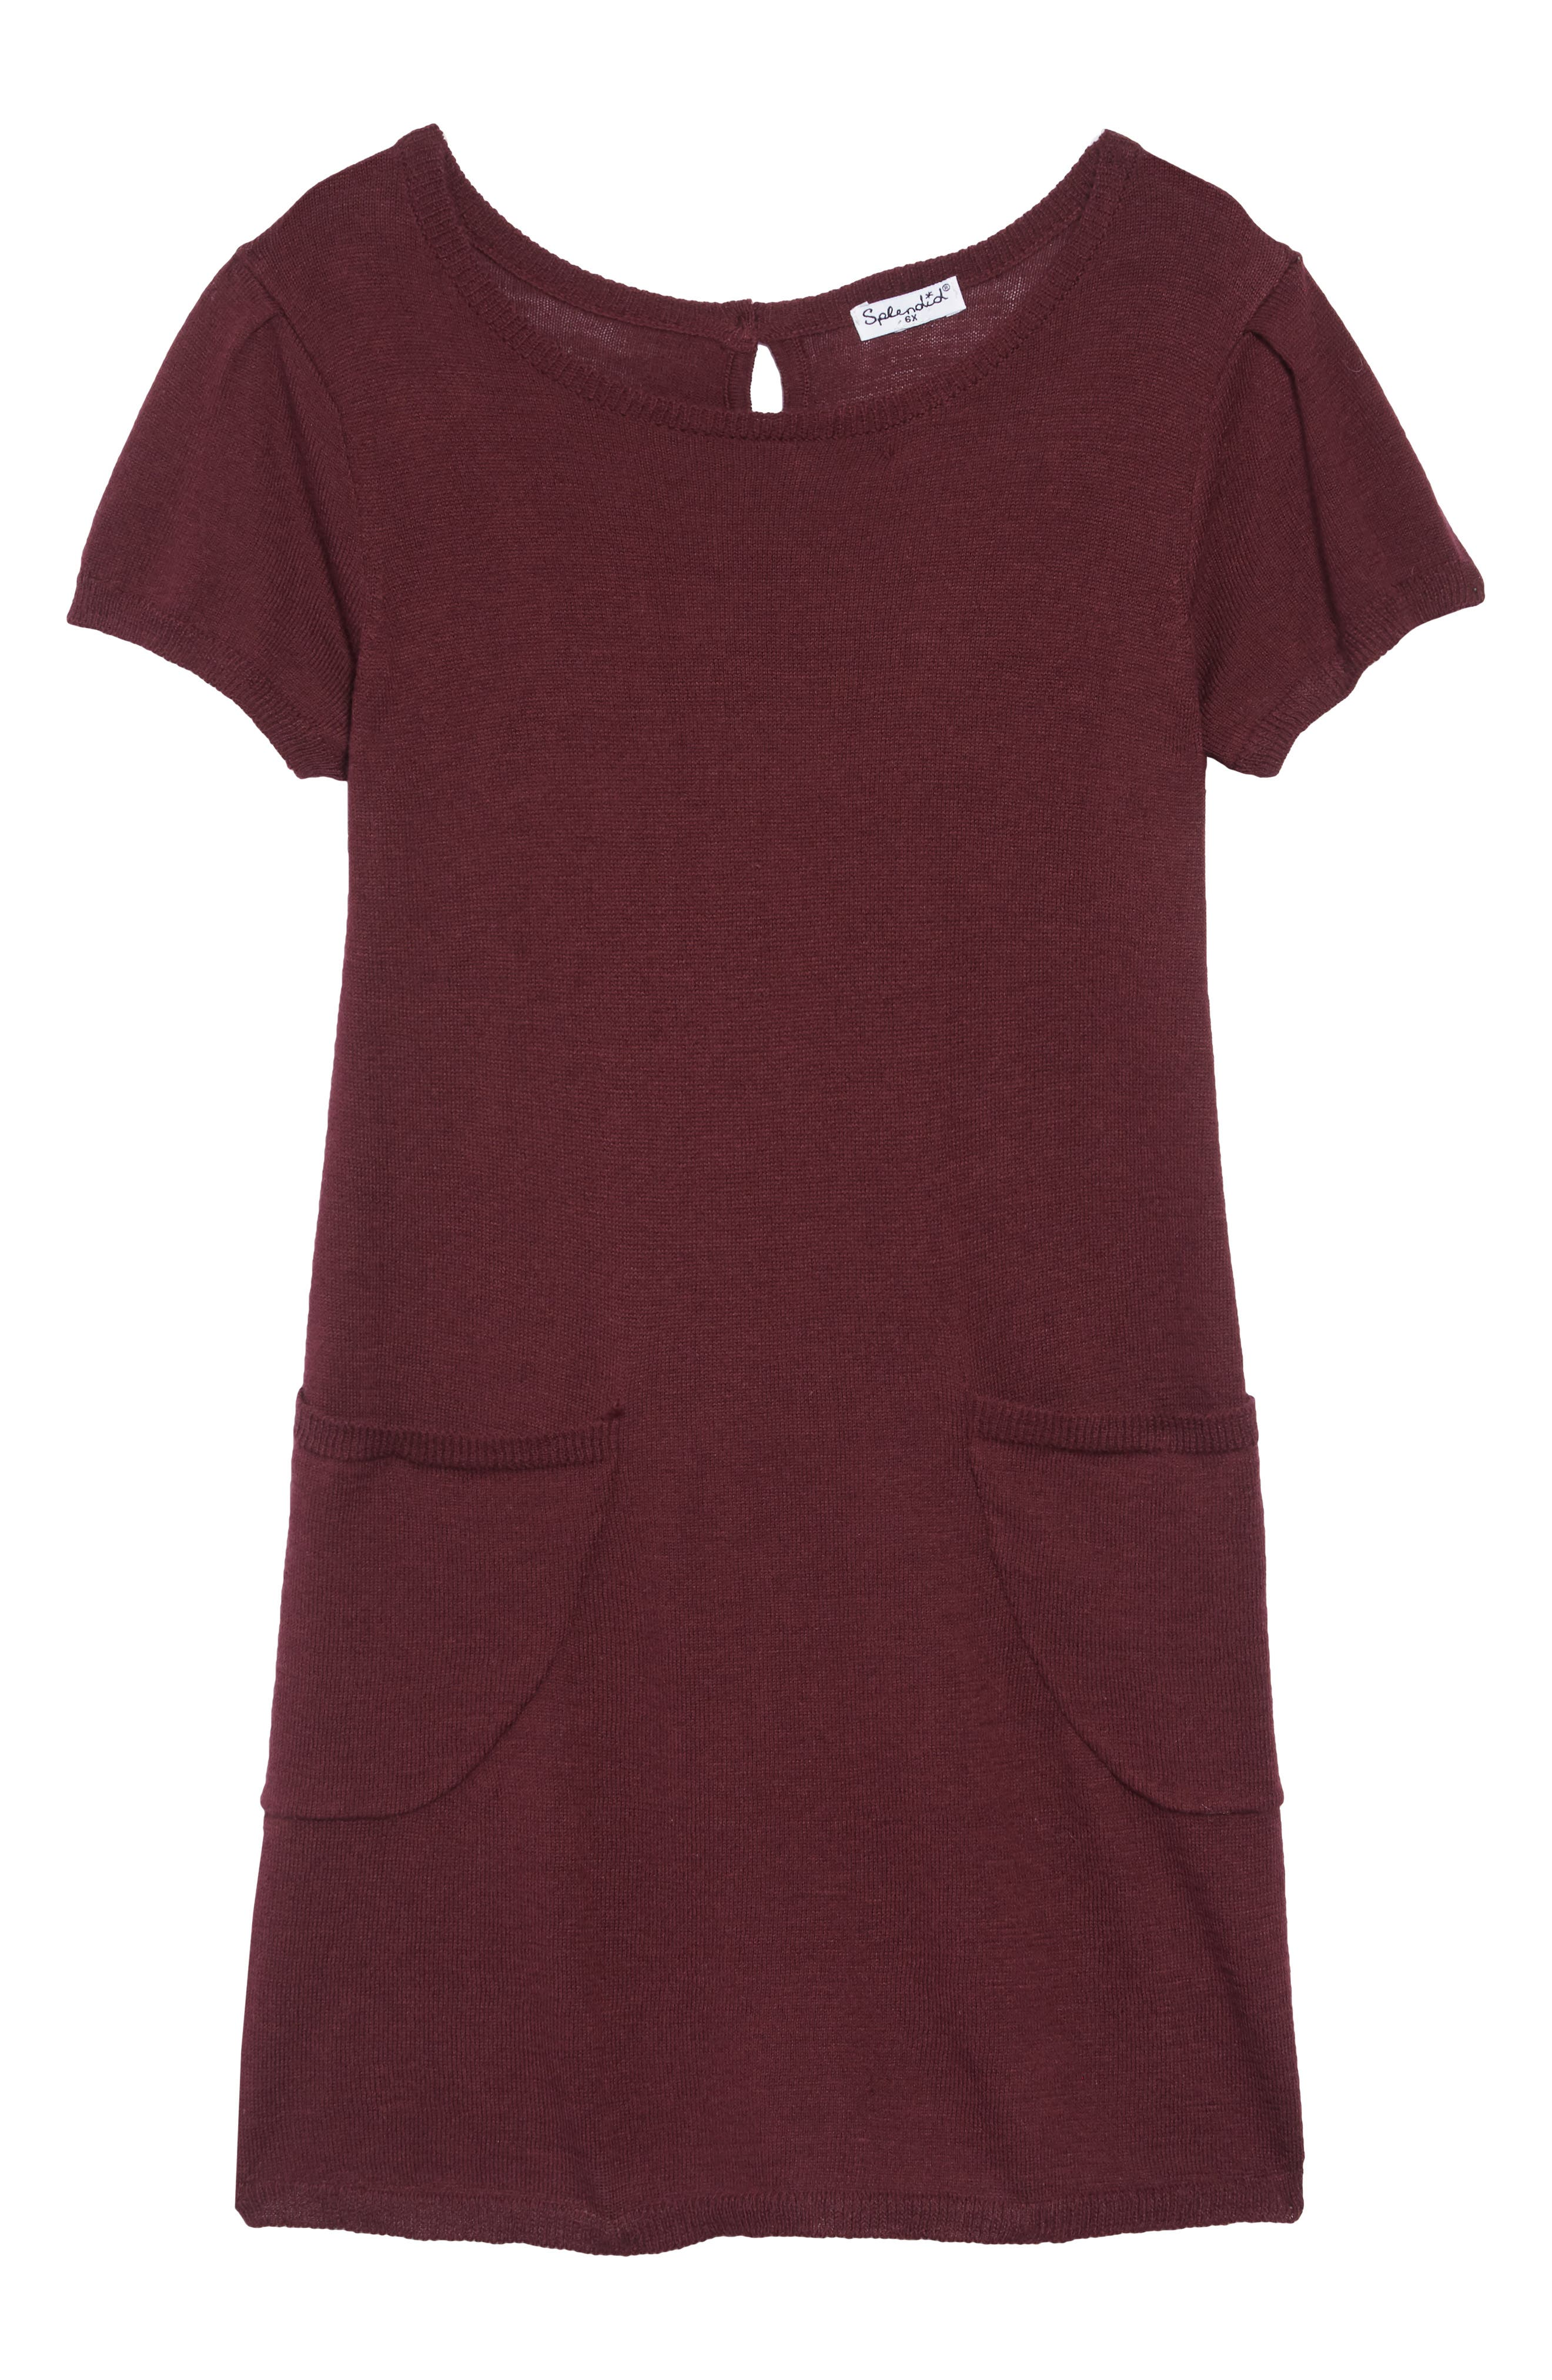 Sweater Dress,                         Main,                         color, FIG